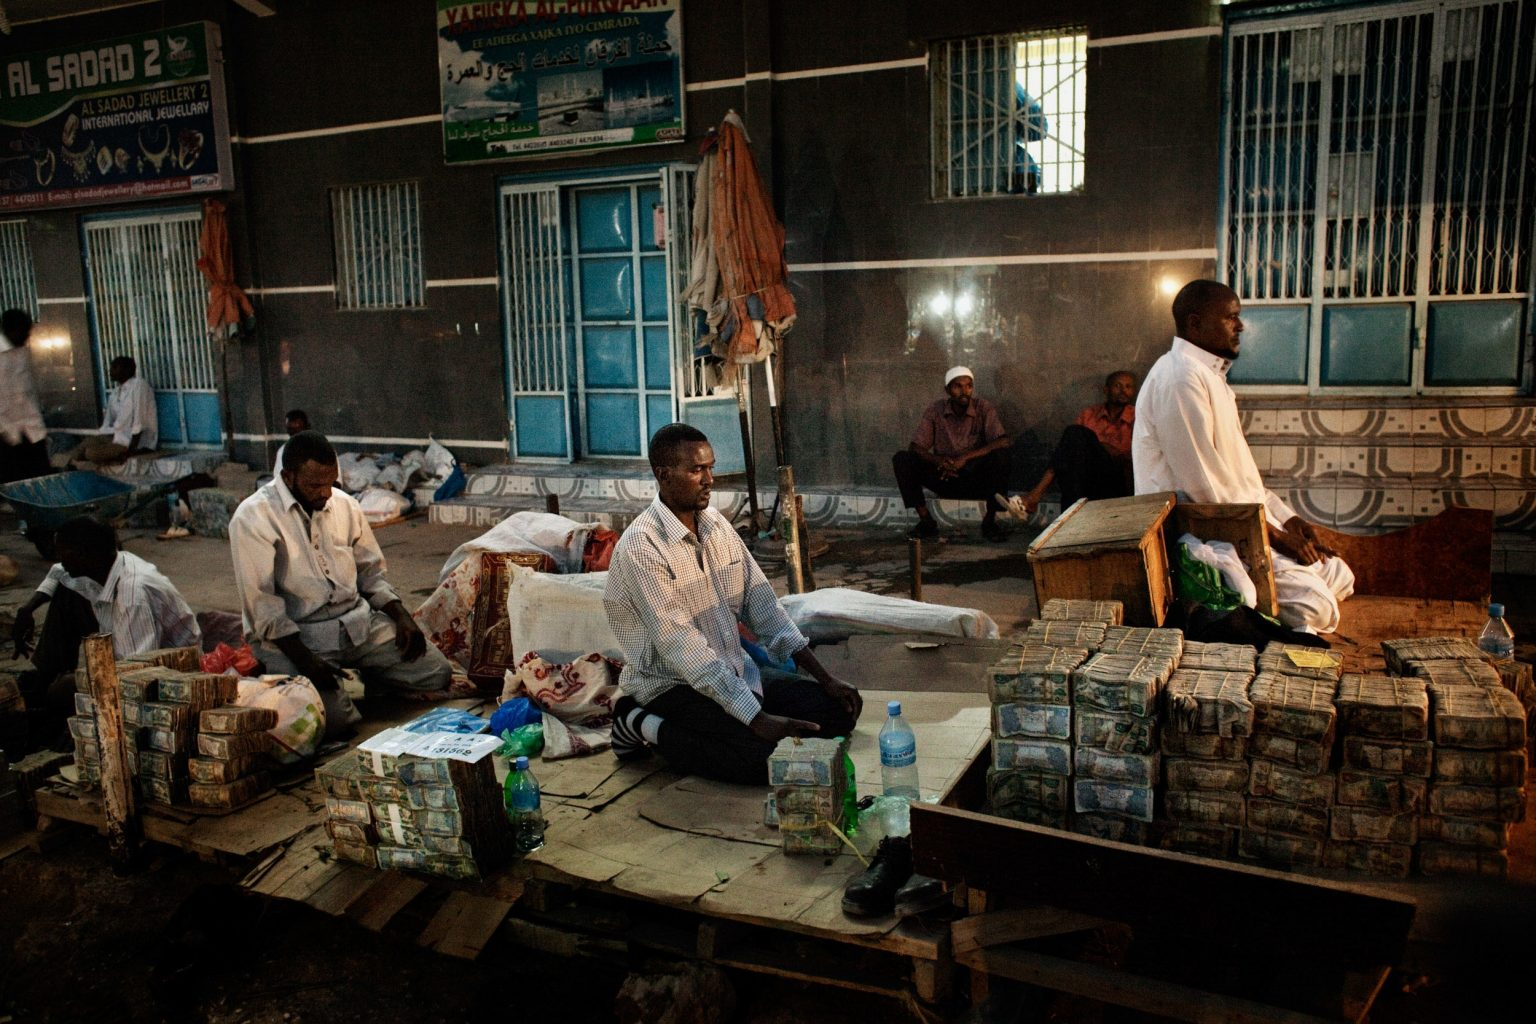 A currency exchangers pray at the central market in Hargeisa during the evening prayer. Inflation in Somalia is very high. The US Dollars - Somali Shilling currency exchange rate is 1 = 580.400. The bills are worth almost nothing. For 100USD you receive a full plastic bag of shillings.